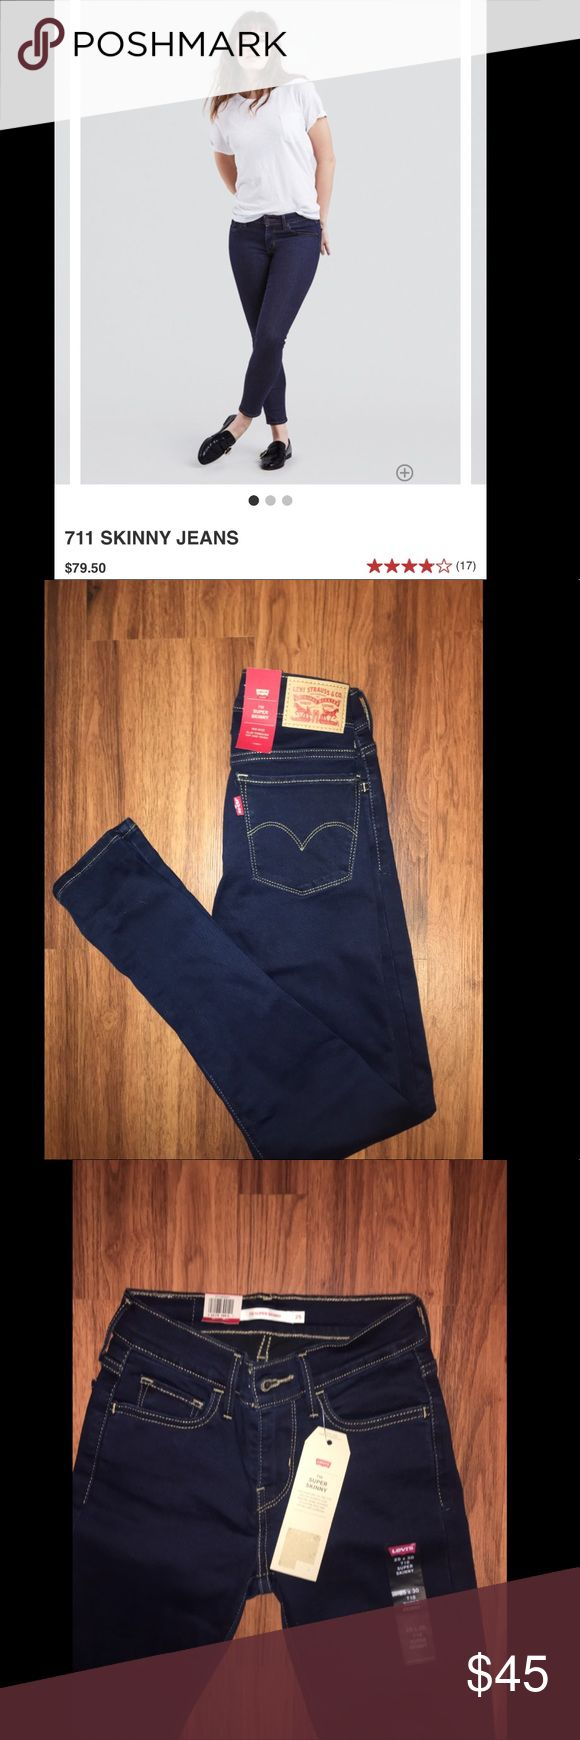 Levi 711 Skinny Dark Wash These suckers are literally brand new bc I bought the wrong size and lost the receipt & Macy's won't take them back!!! (Thanks Macy's!!) They are such a nice dark wash, and trust me, the magic of Levi's will do wonders for your butt! The photo from the website is the closest I could find, but these are more mid-rise than low! Shoot me an offer :) Levi's Jeans Skinny